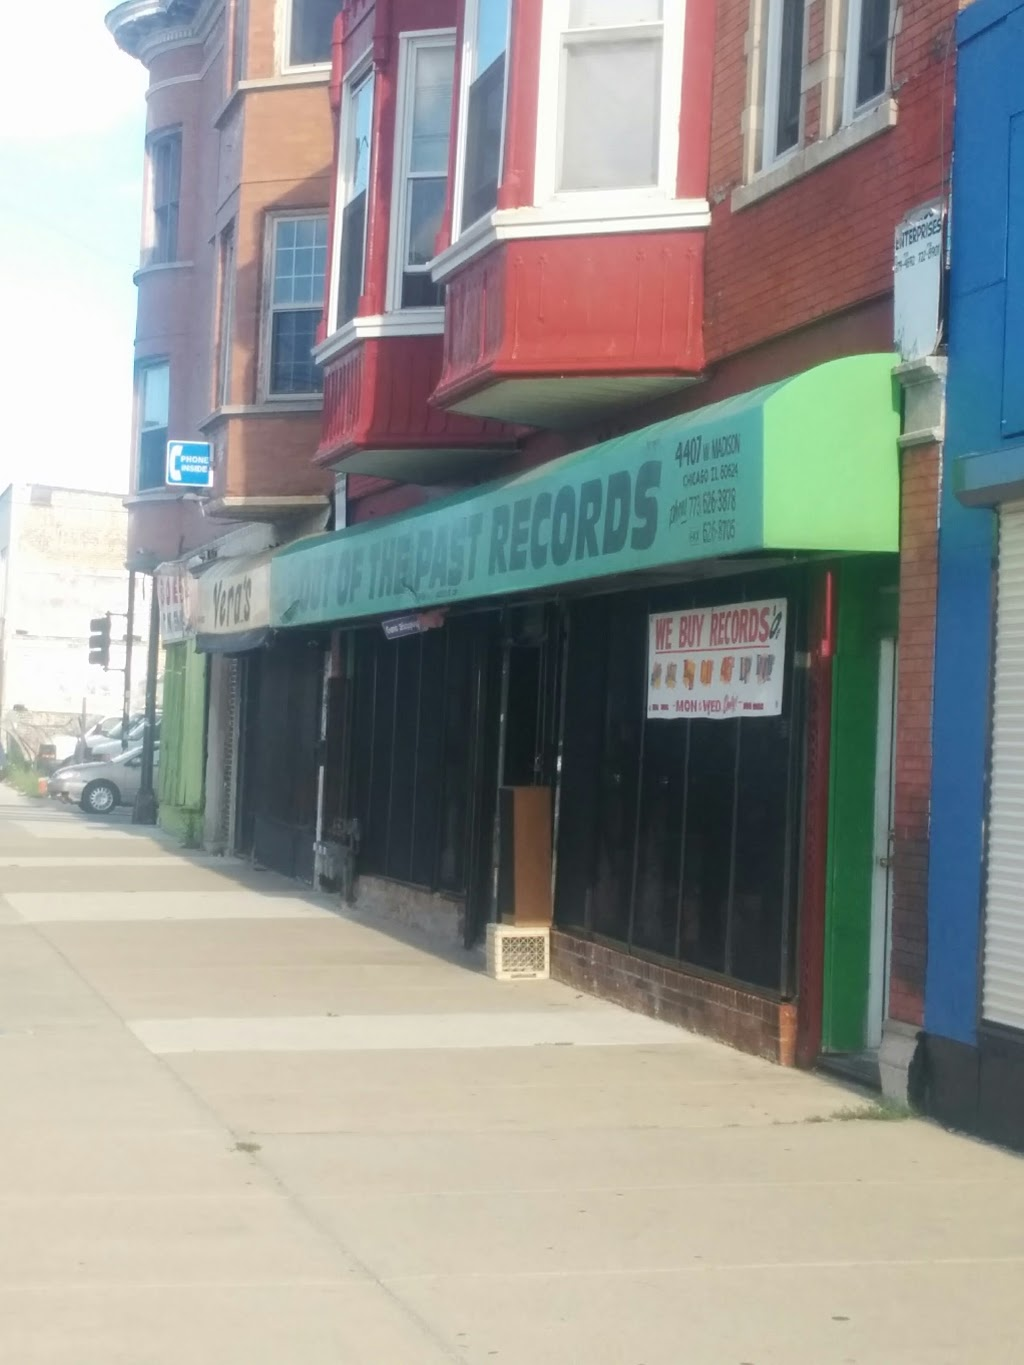 Out of the Past Records - electronics store  | Photo 1 of 10 | Address: 4407 W Madison St, Chicago, IL 60624, USA | Phone: (773) 626-3878